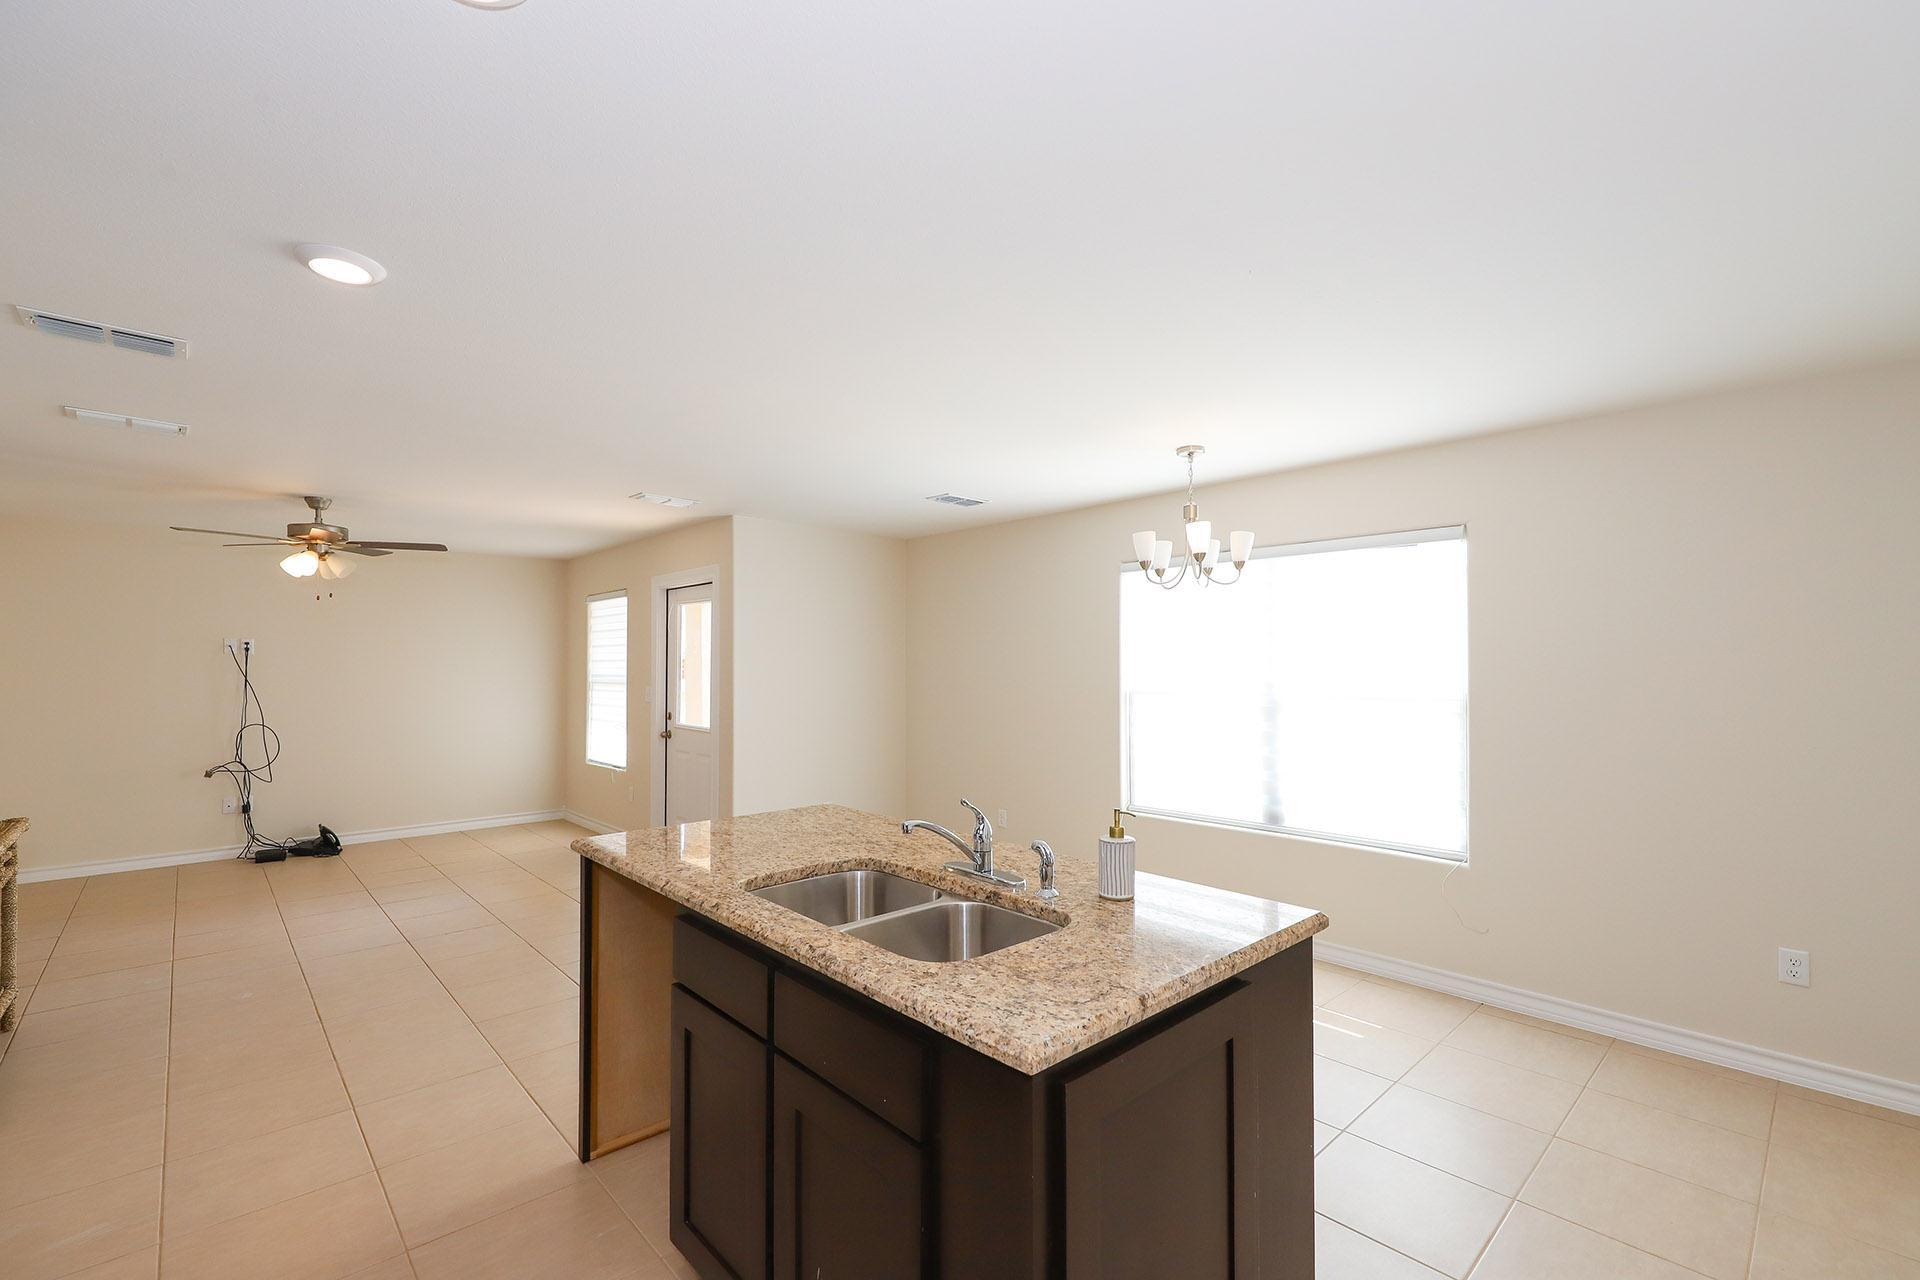 Kitchen featured in the Plan 1 By KRK Homes in Laredo, TX